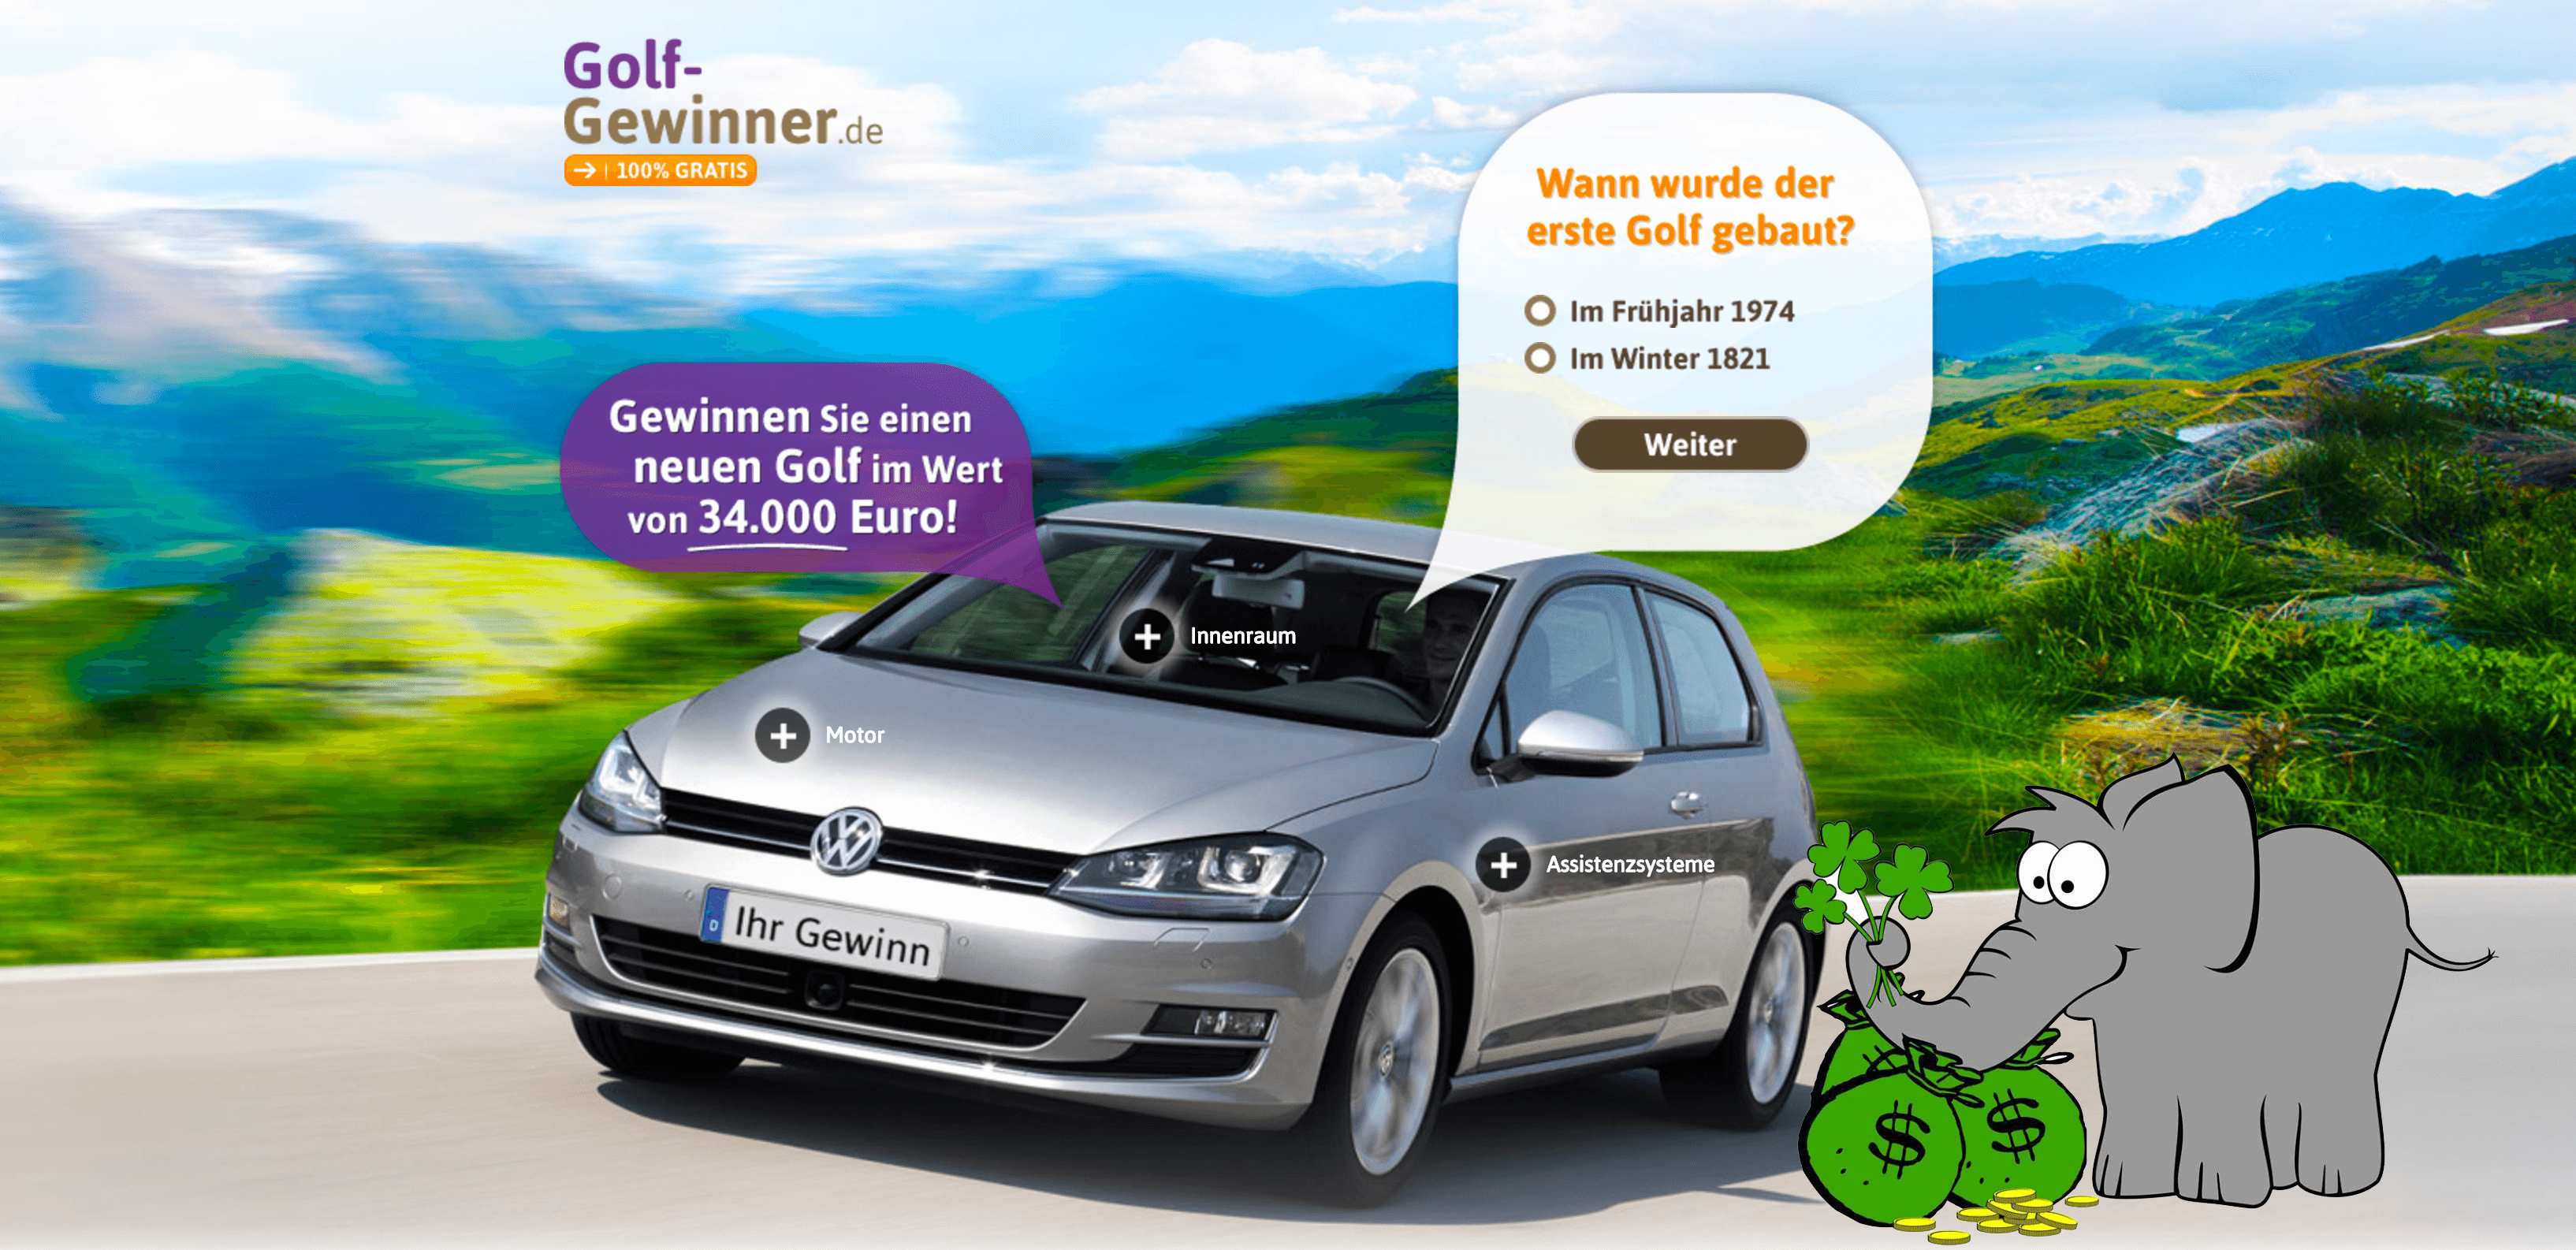 vw golf gewinnspiel mit vollausstattung der gewinnofant. Black Bedroom Furniture Sets. Home Design Ideas